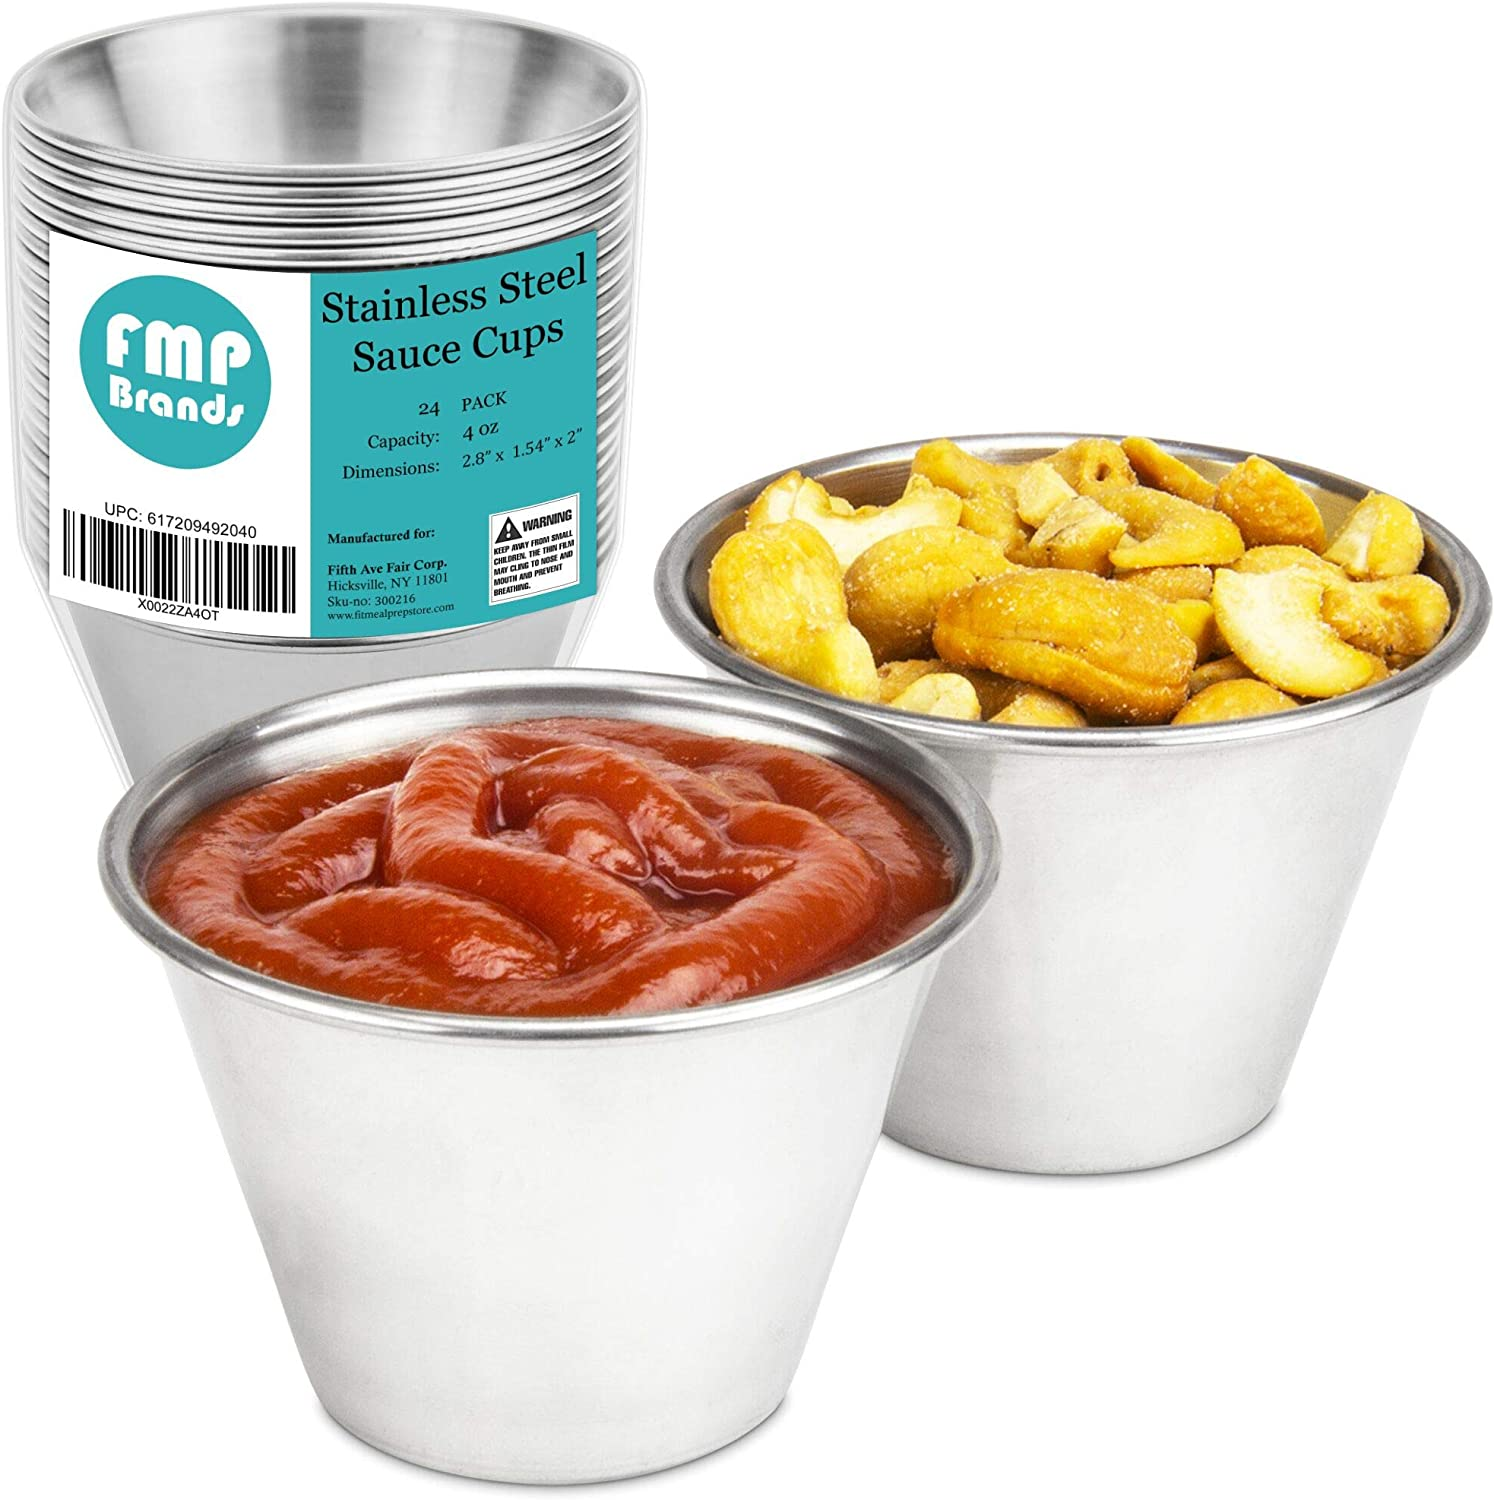 [24 Pack] 4 oz Stainless Steel Sauce Cups - Individual Round Condiments Ramekins, Commercial Grade Safe/Portion Dipping Sauce Kitchen Set